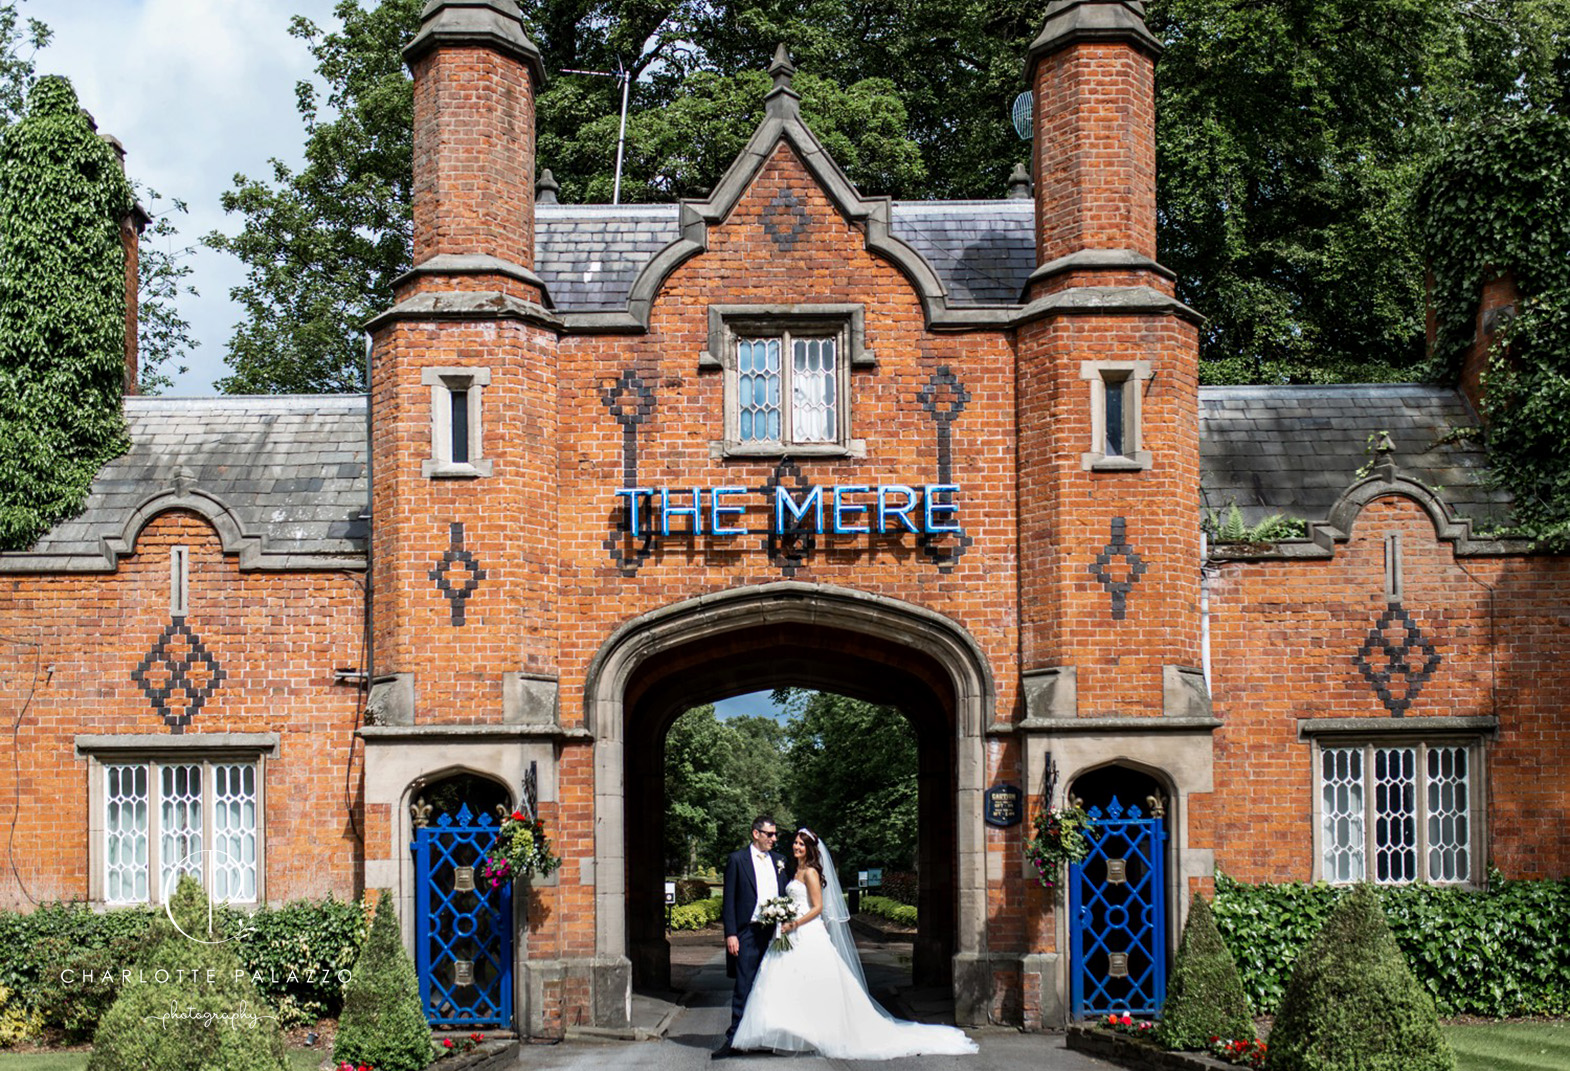 Fine_art_wedding_Photography_Cheshire_Wedding_Venues_The_Mere_Resort_0030_1.jpg